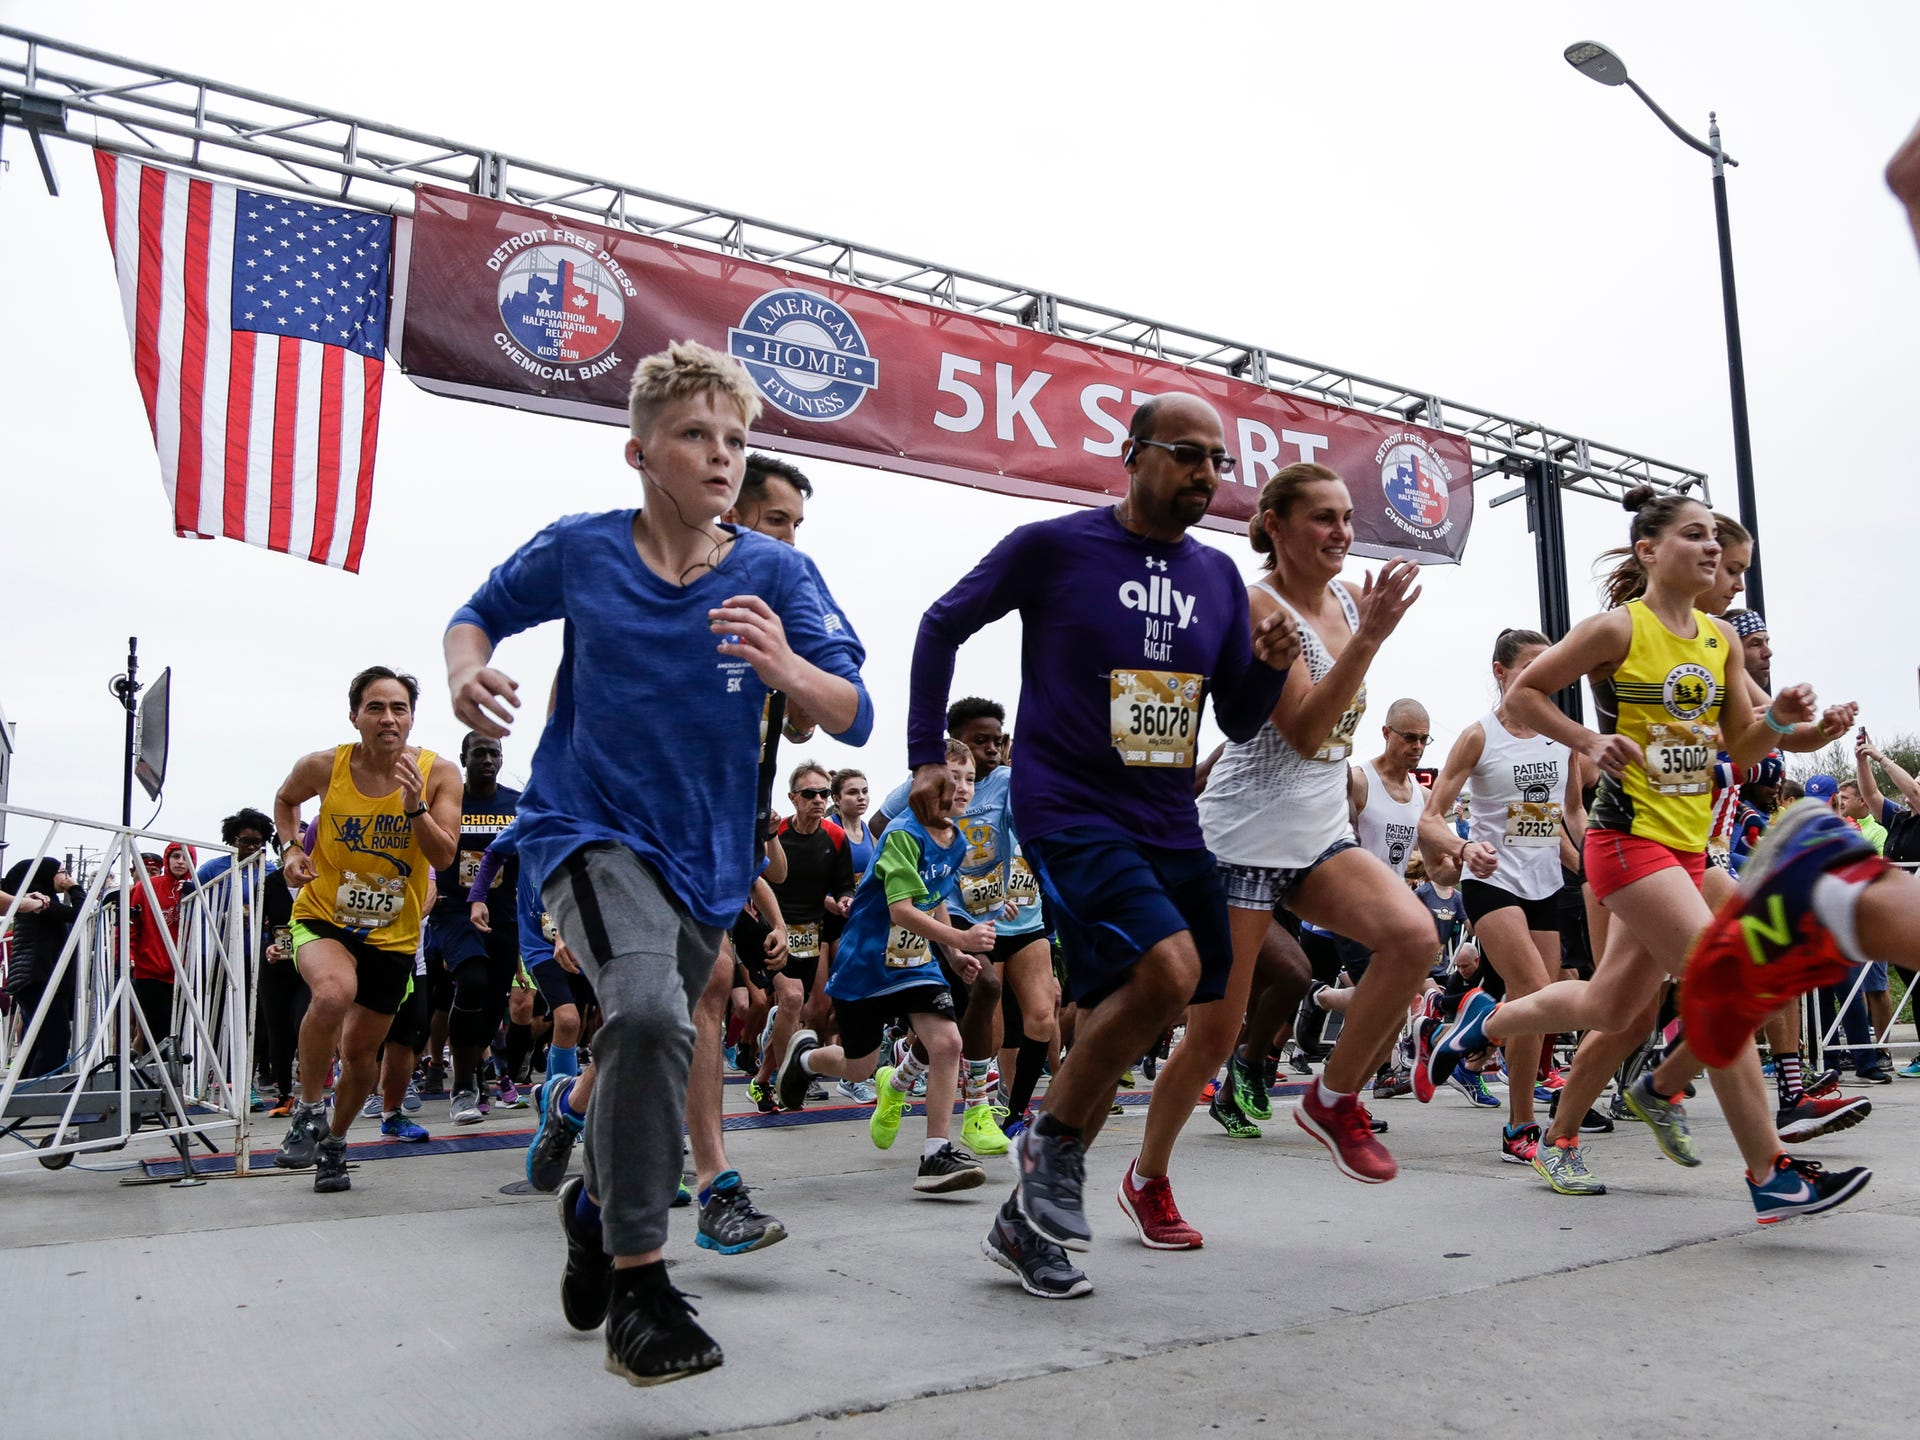 d56f1c93bf Runners take off for the American Home Fitness 5K run